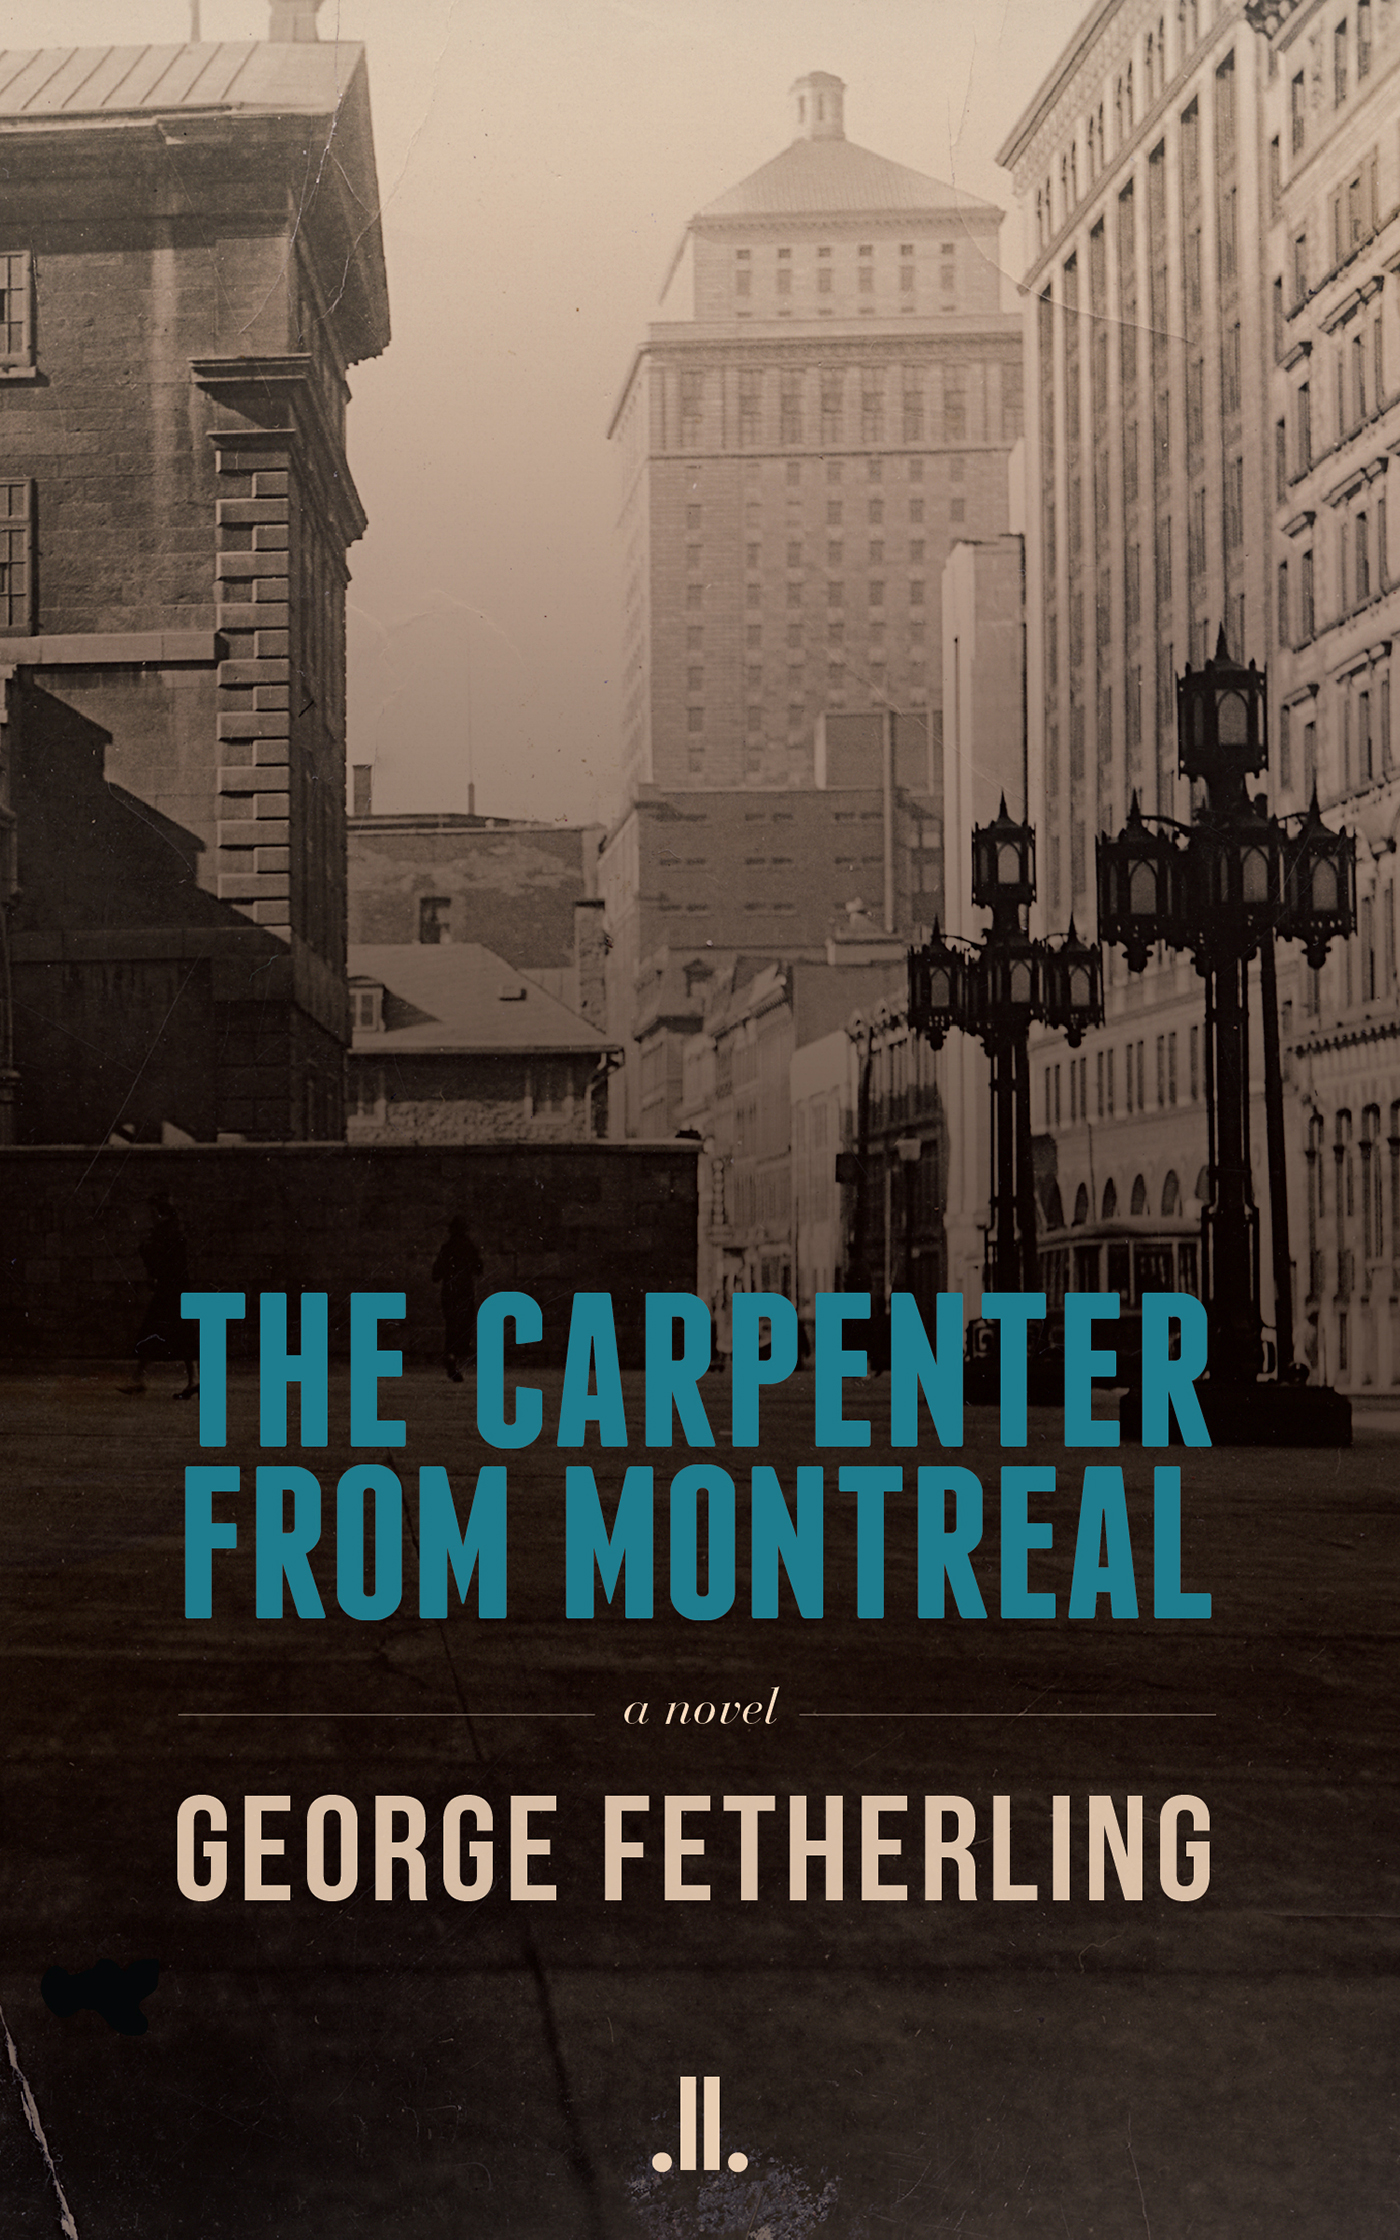 The Carpenter from Montreal